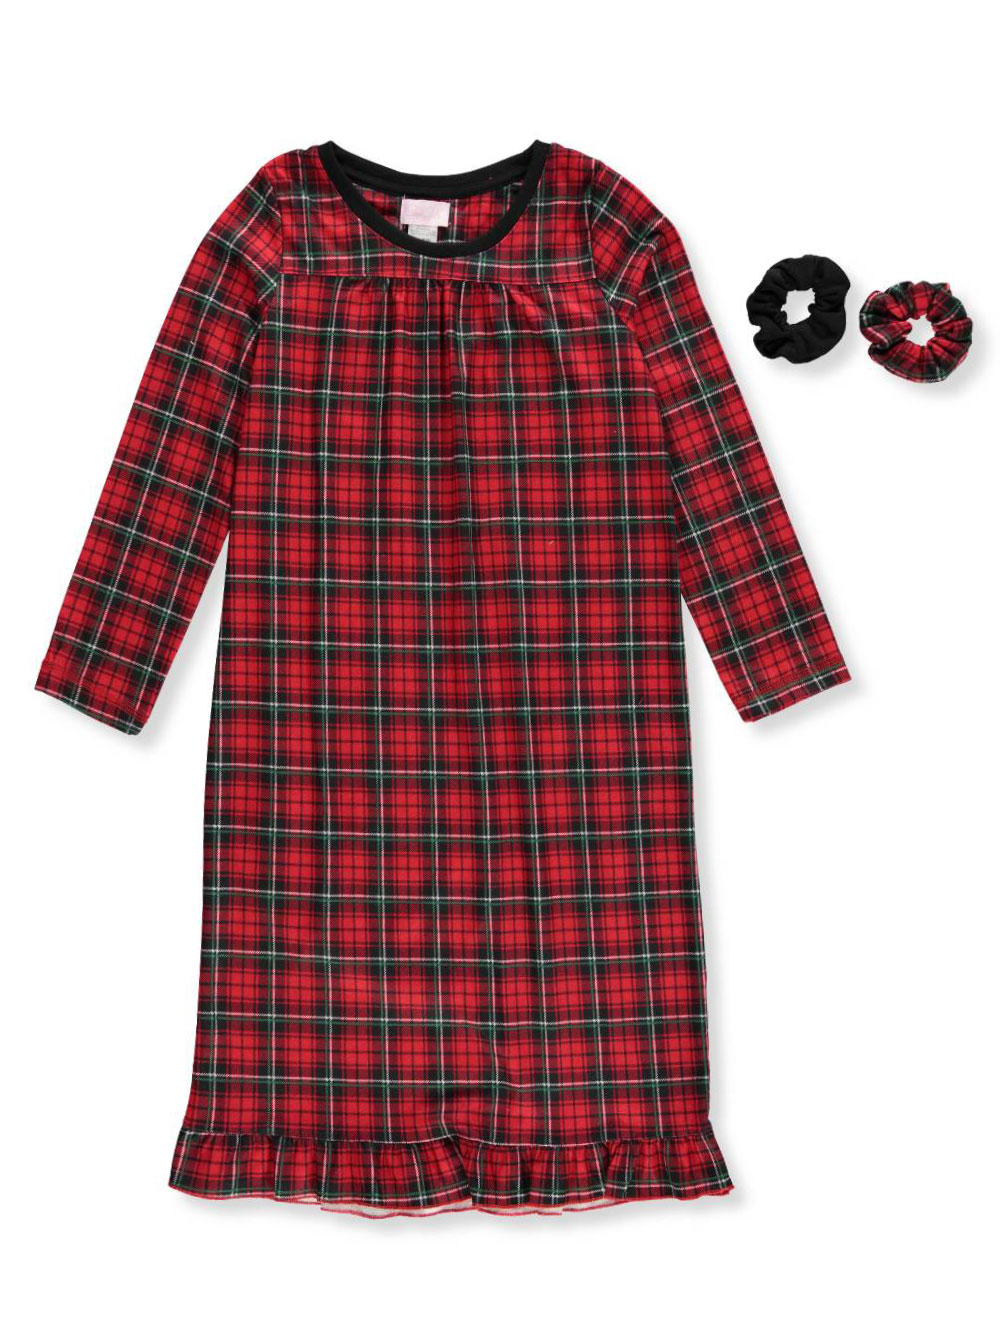 Girls Fashion Nightgown with Scrunchies